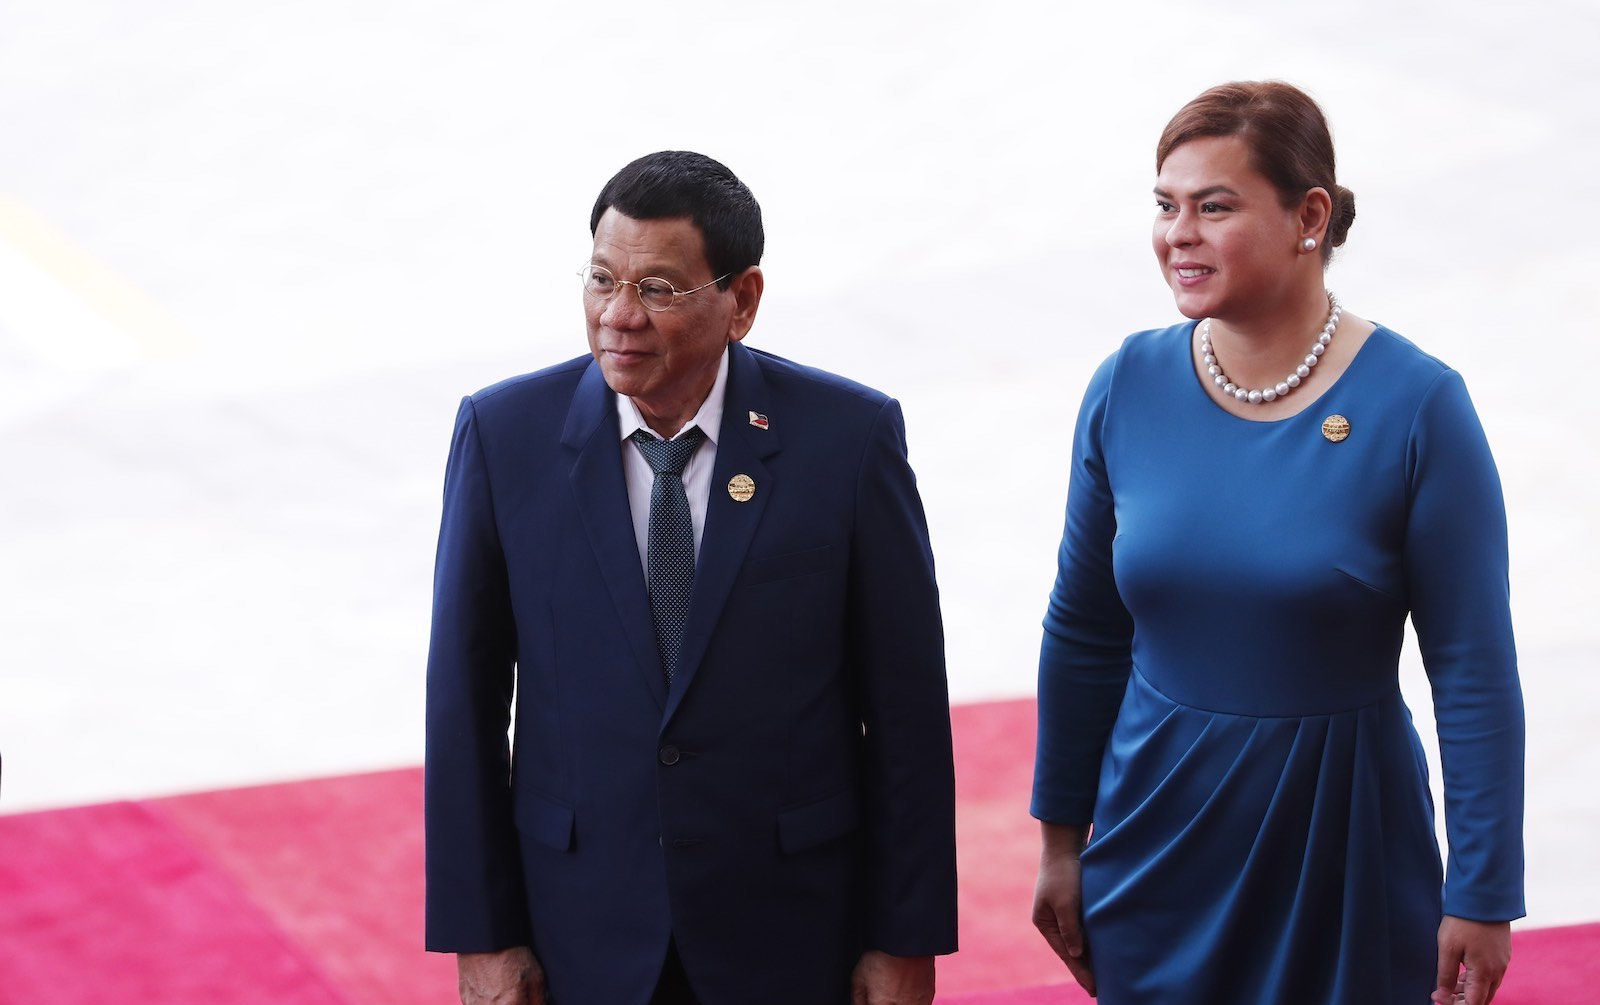 Philippines President Rodrigo Duterte (L) and daughter Sara Duterte at the Boao Forum for Asia Conference 2018, in China's Hainan province, April 2018 (AFP via Getty Images)